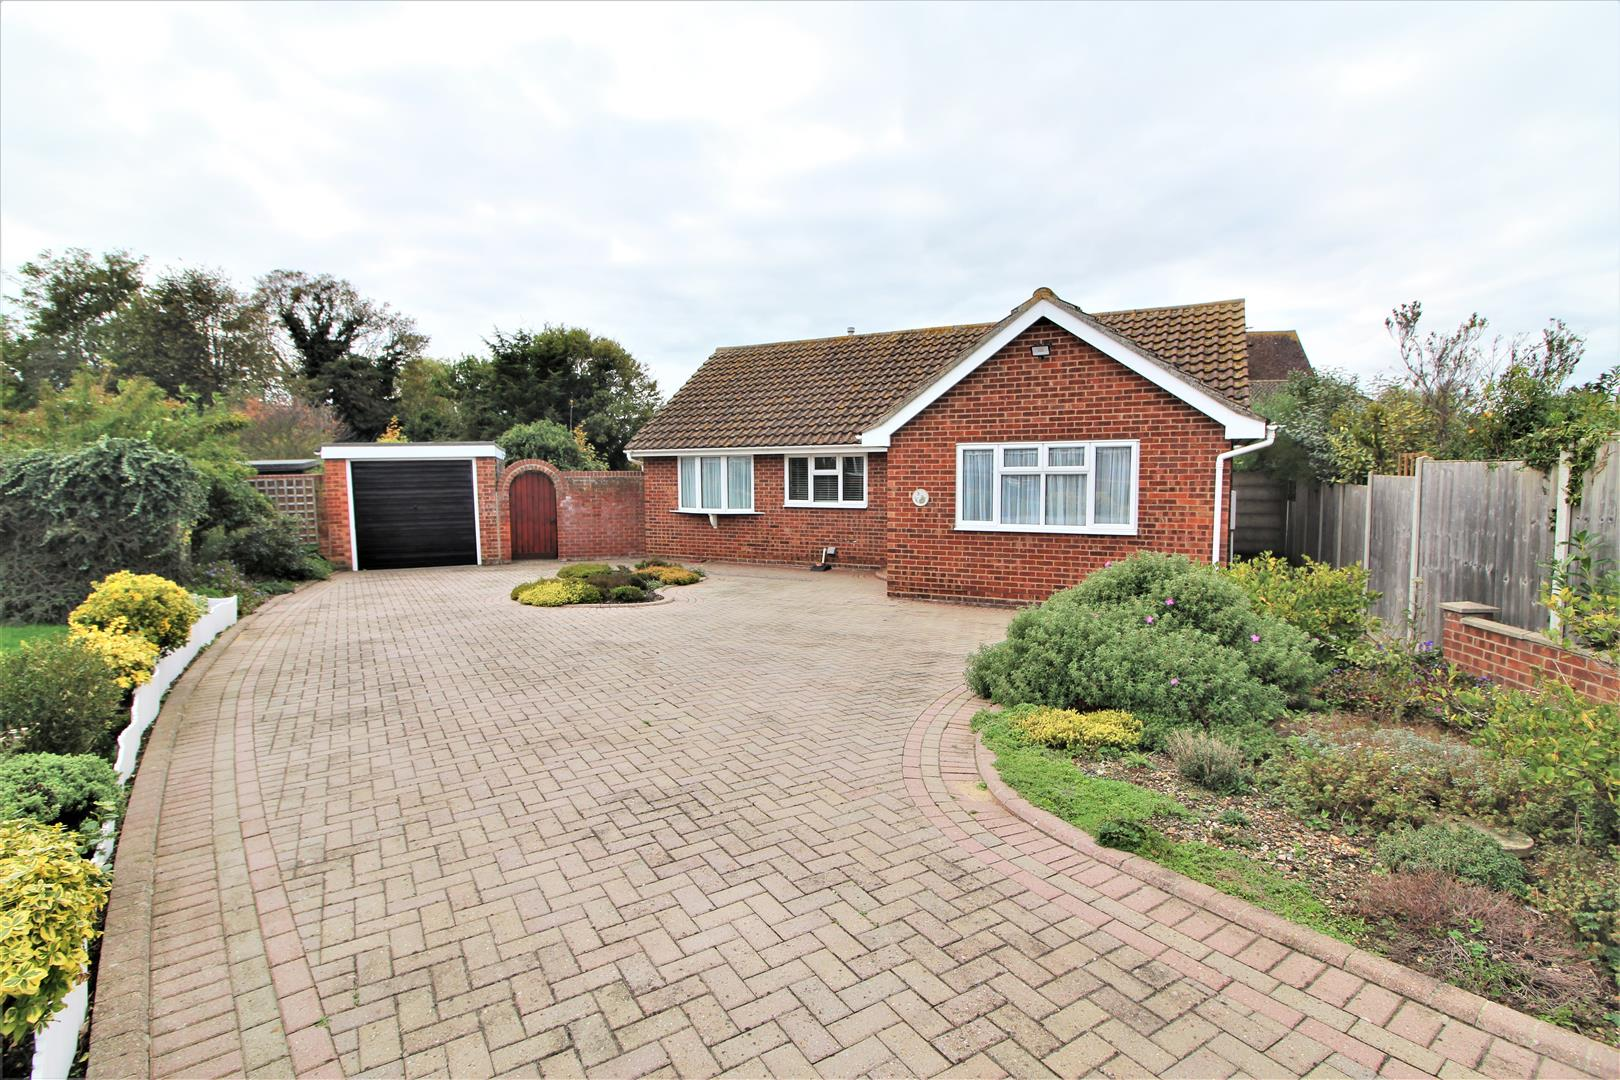 Cartbridge Close, Walton On The Naze, Essex, CO14 8QJ